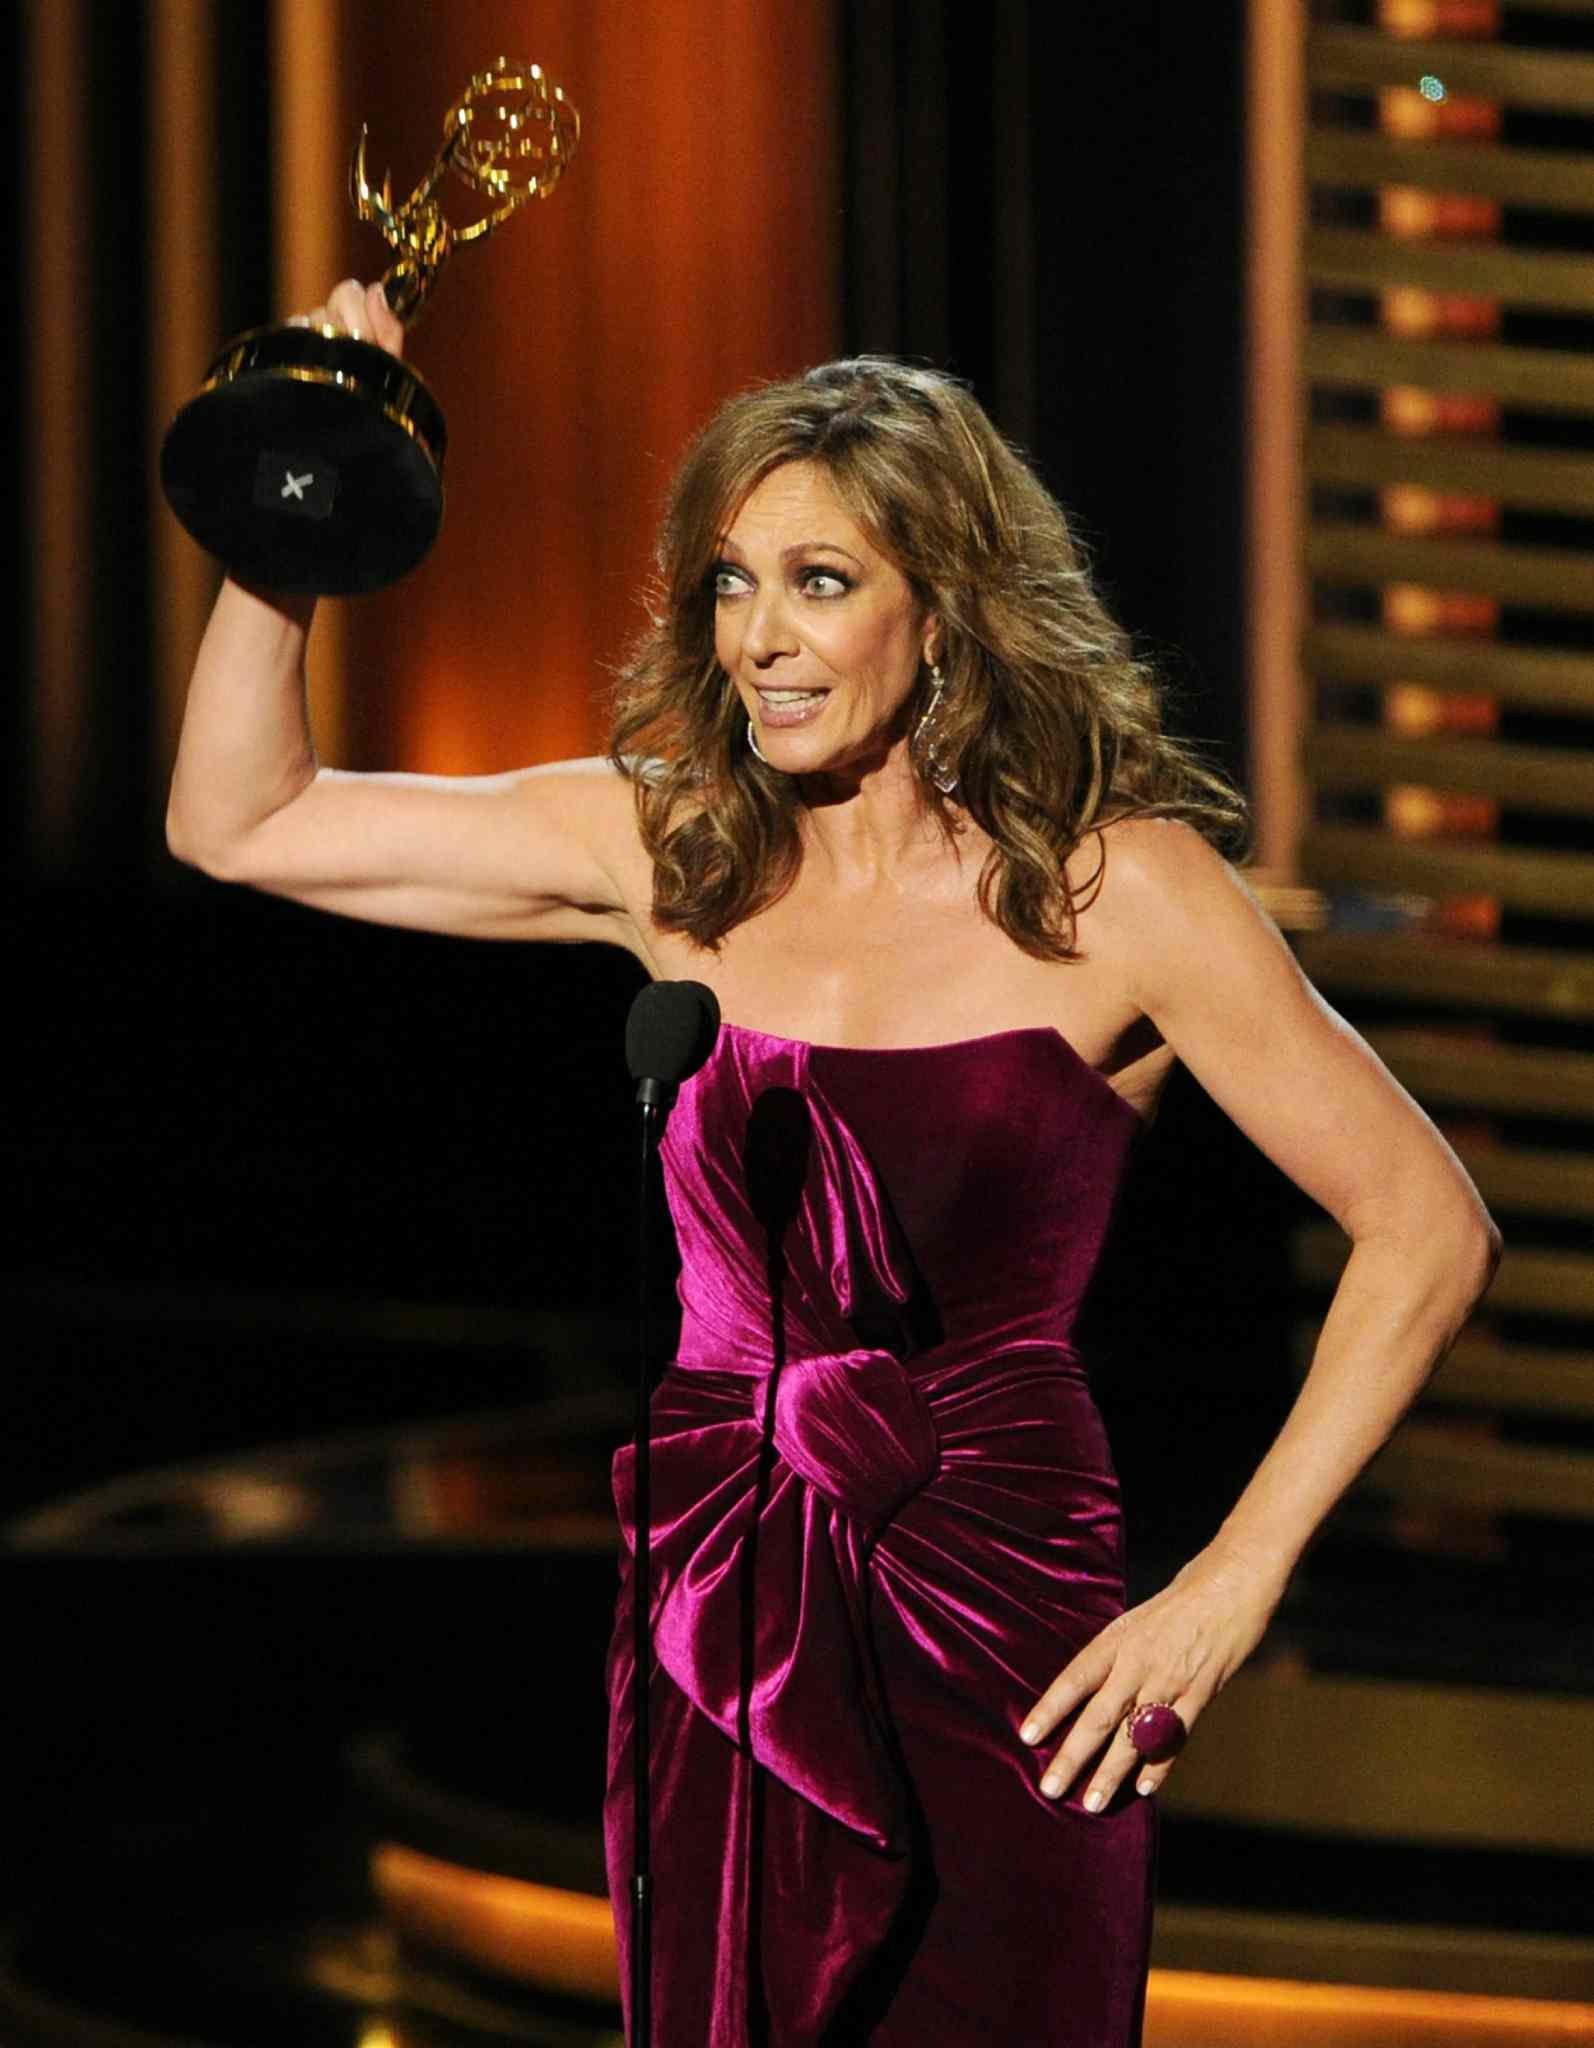 Allison Janney accepts the award for outstanding supporting actress in a comedy series for her role in Mom at the 66th Annual Primetime Emmy Awards at the Nokia Theatre L.A. Live Monday.